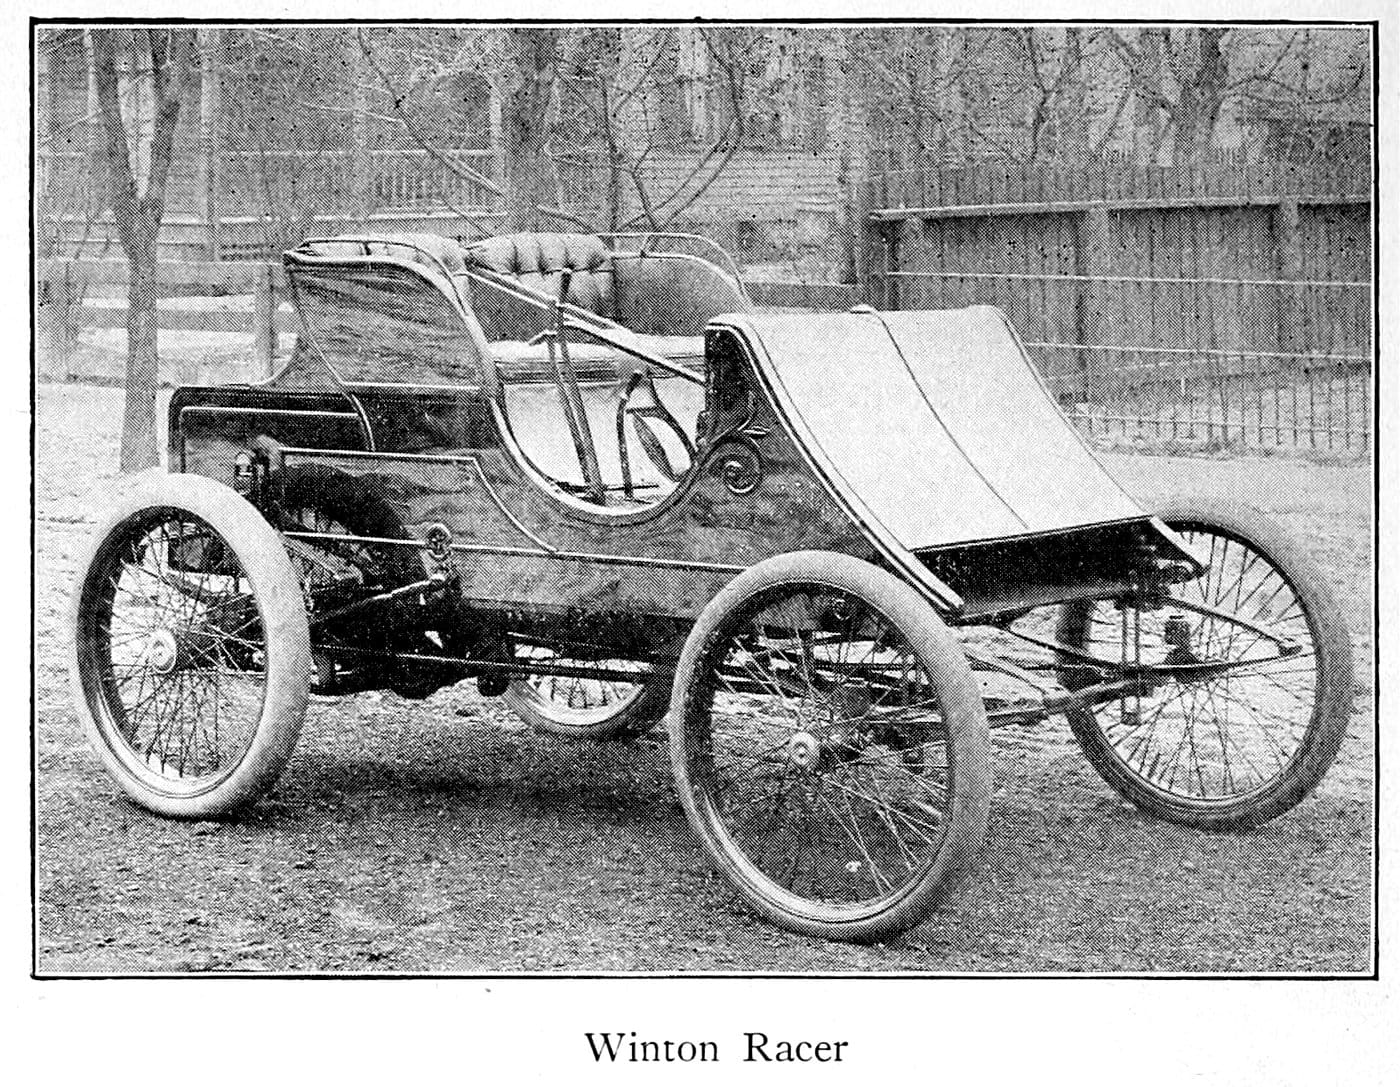 Antique Winton Racer motor car (1900)